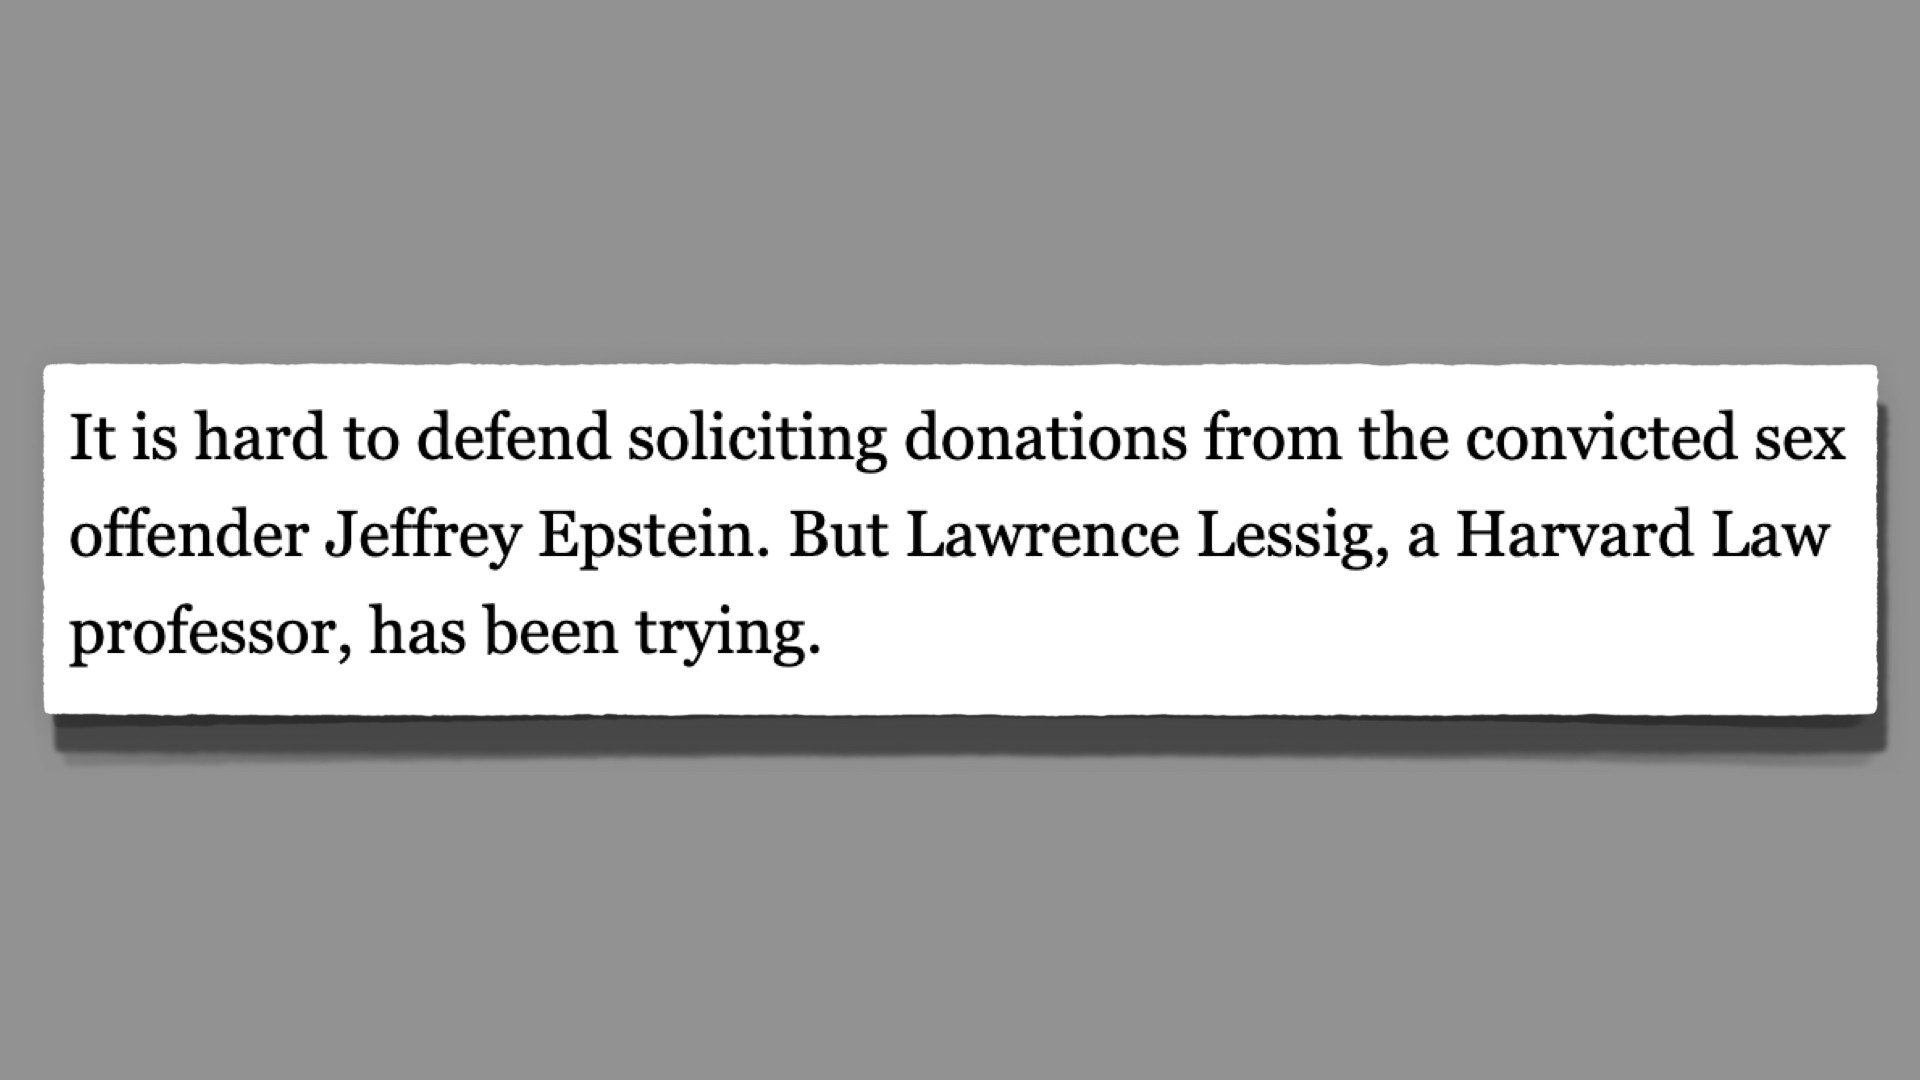 Lede: It's hard to defend donations from Epstein, though Lessig has been trying.